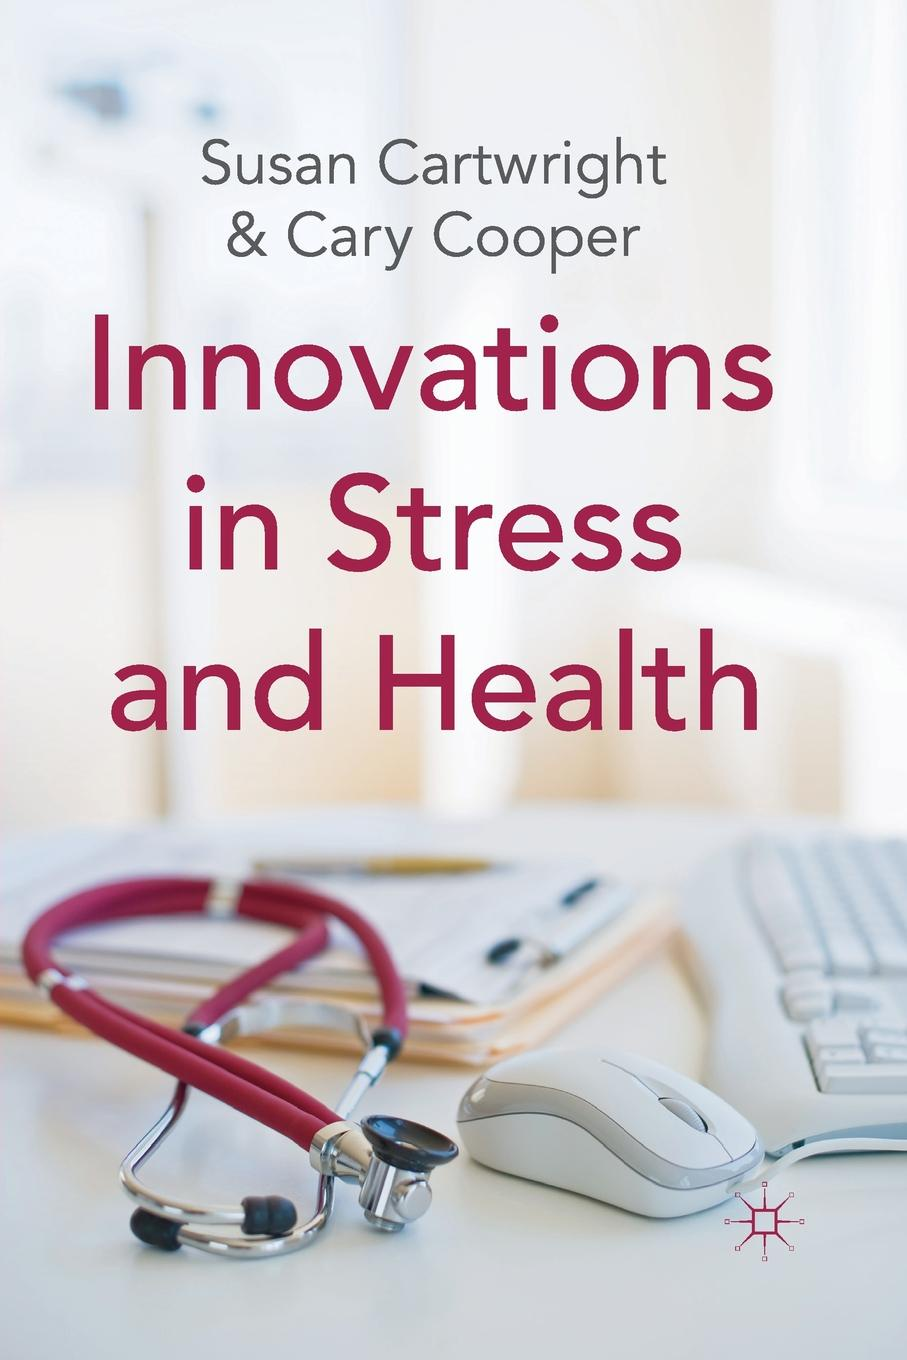 S. Cartwright, C. Cooper Innovations in Stress and Health john melady breakthrough canada s greatest inventions and innovations